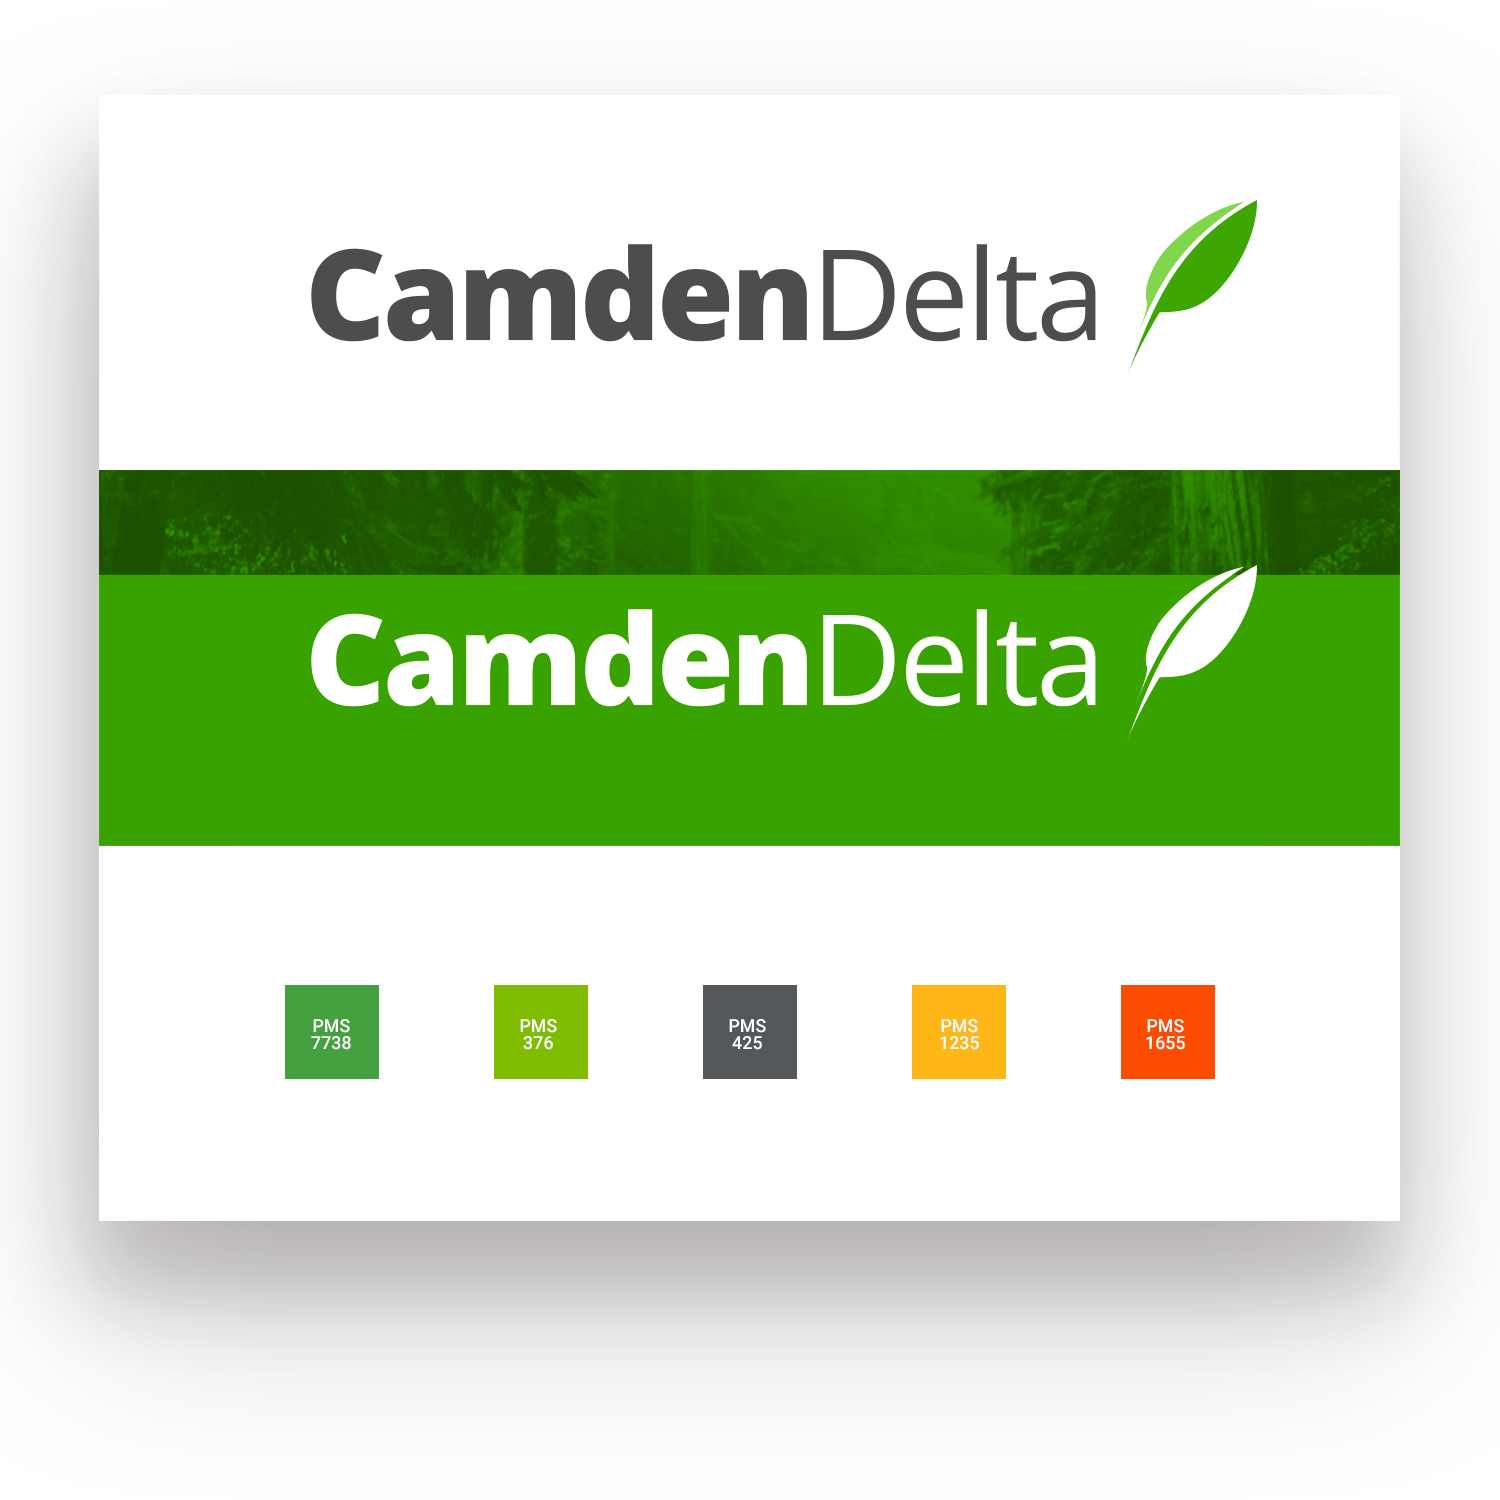 Camden Delta Branding and Colors